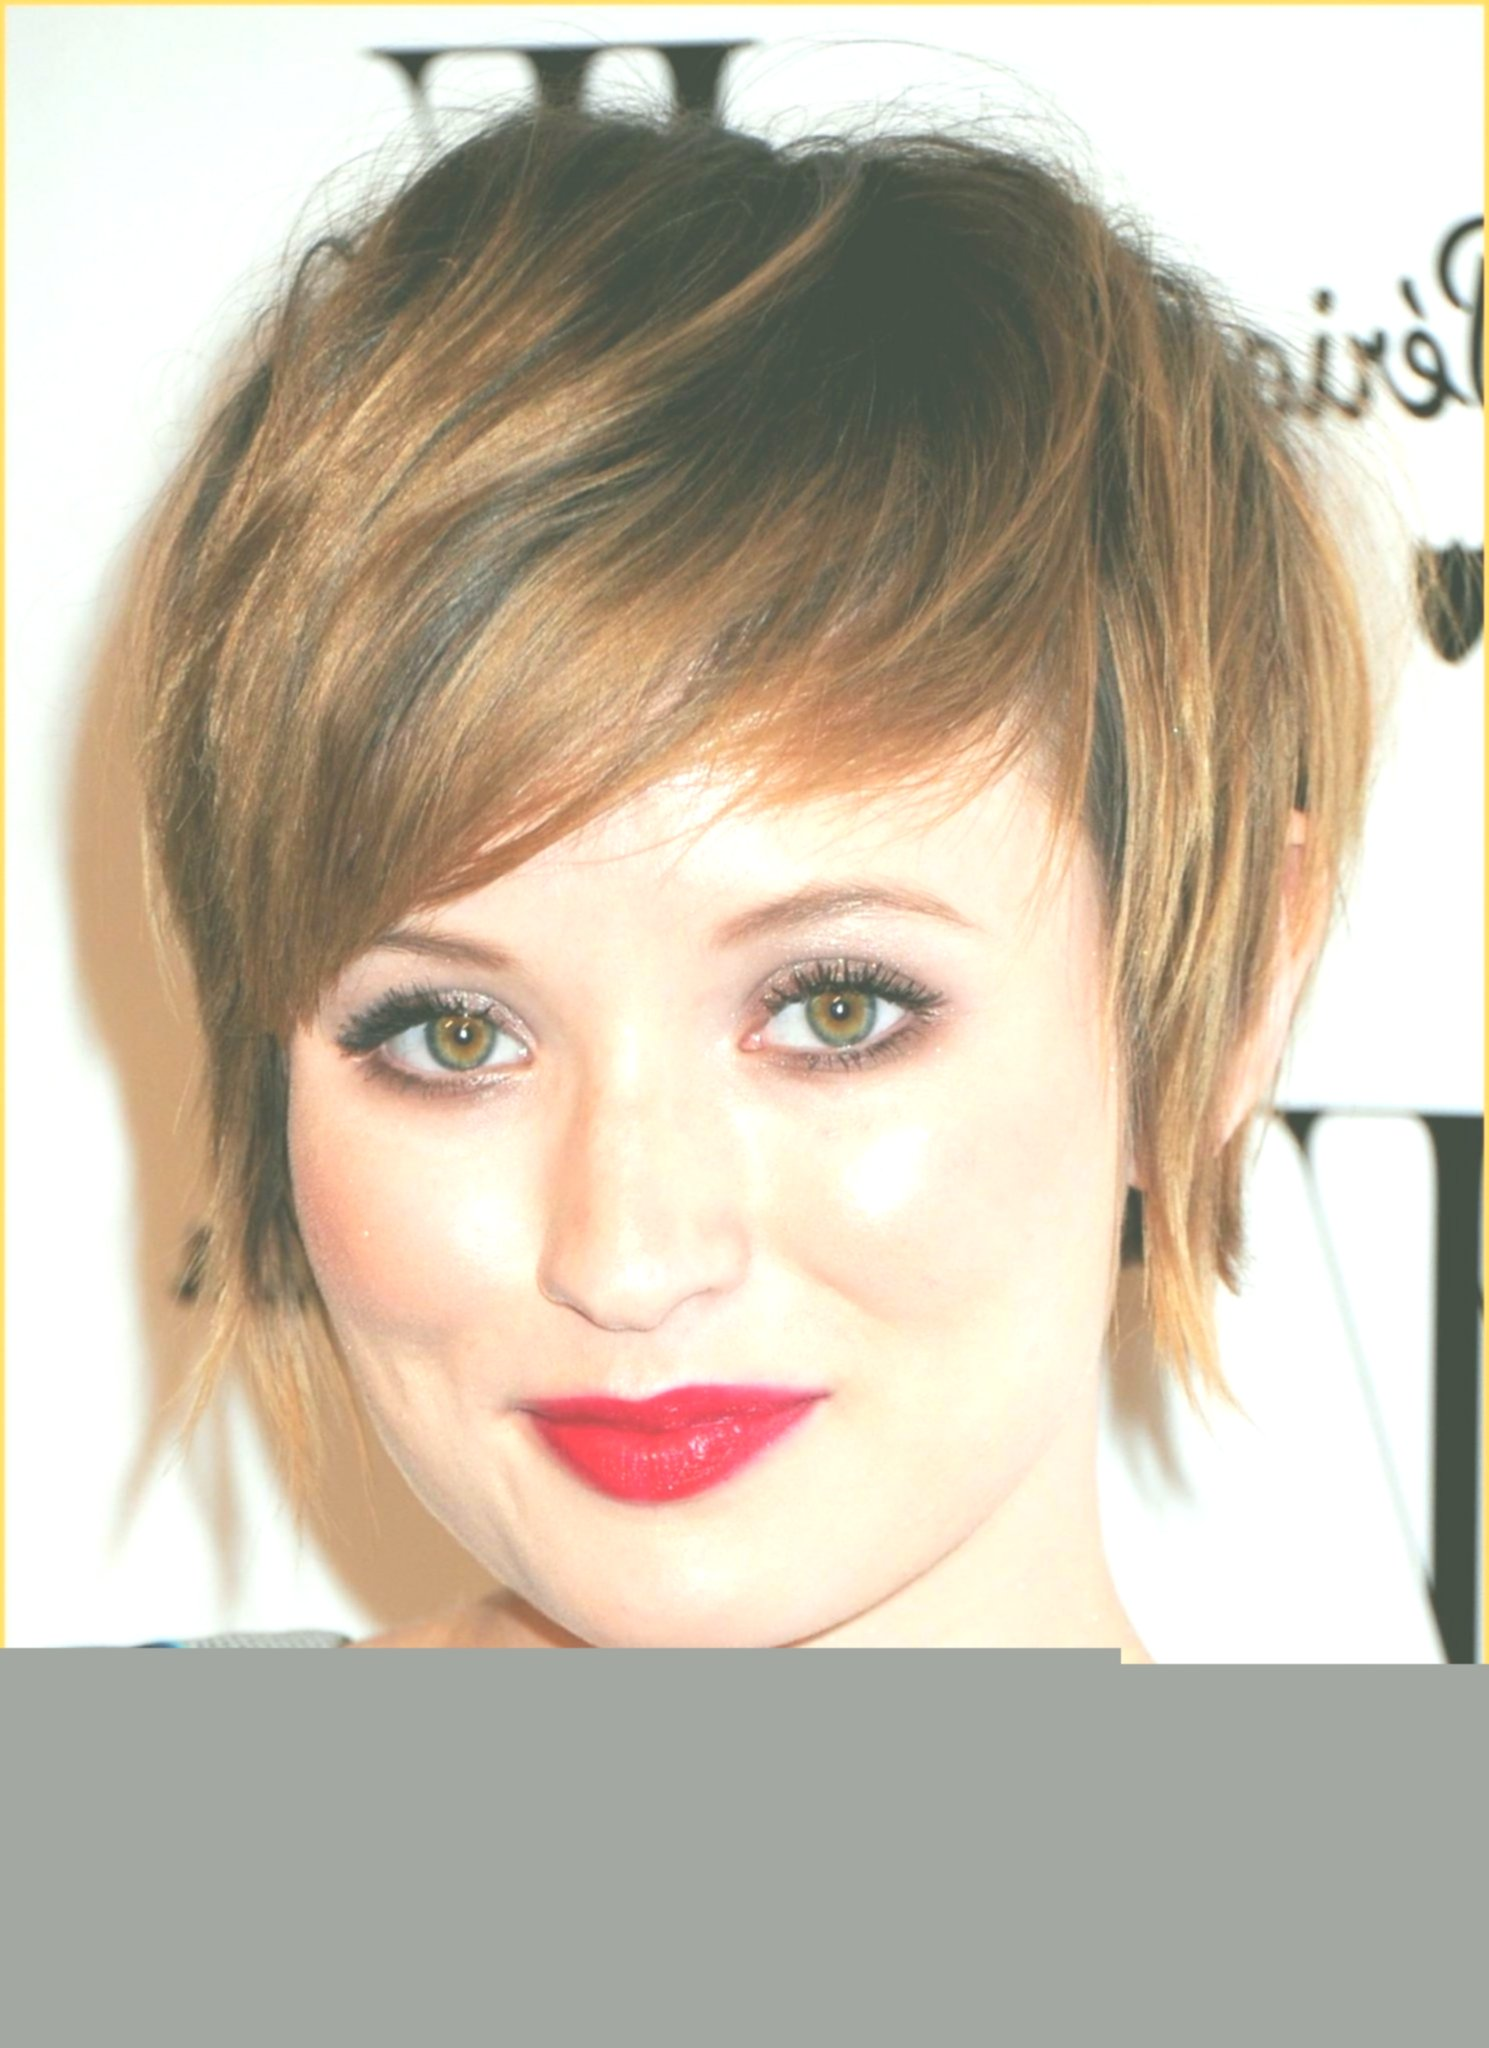 unique hairstyles for slim faces photo picture - Wonderful Hairstyles For Narrow Faces Decoration